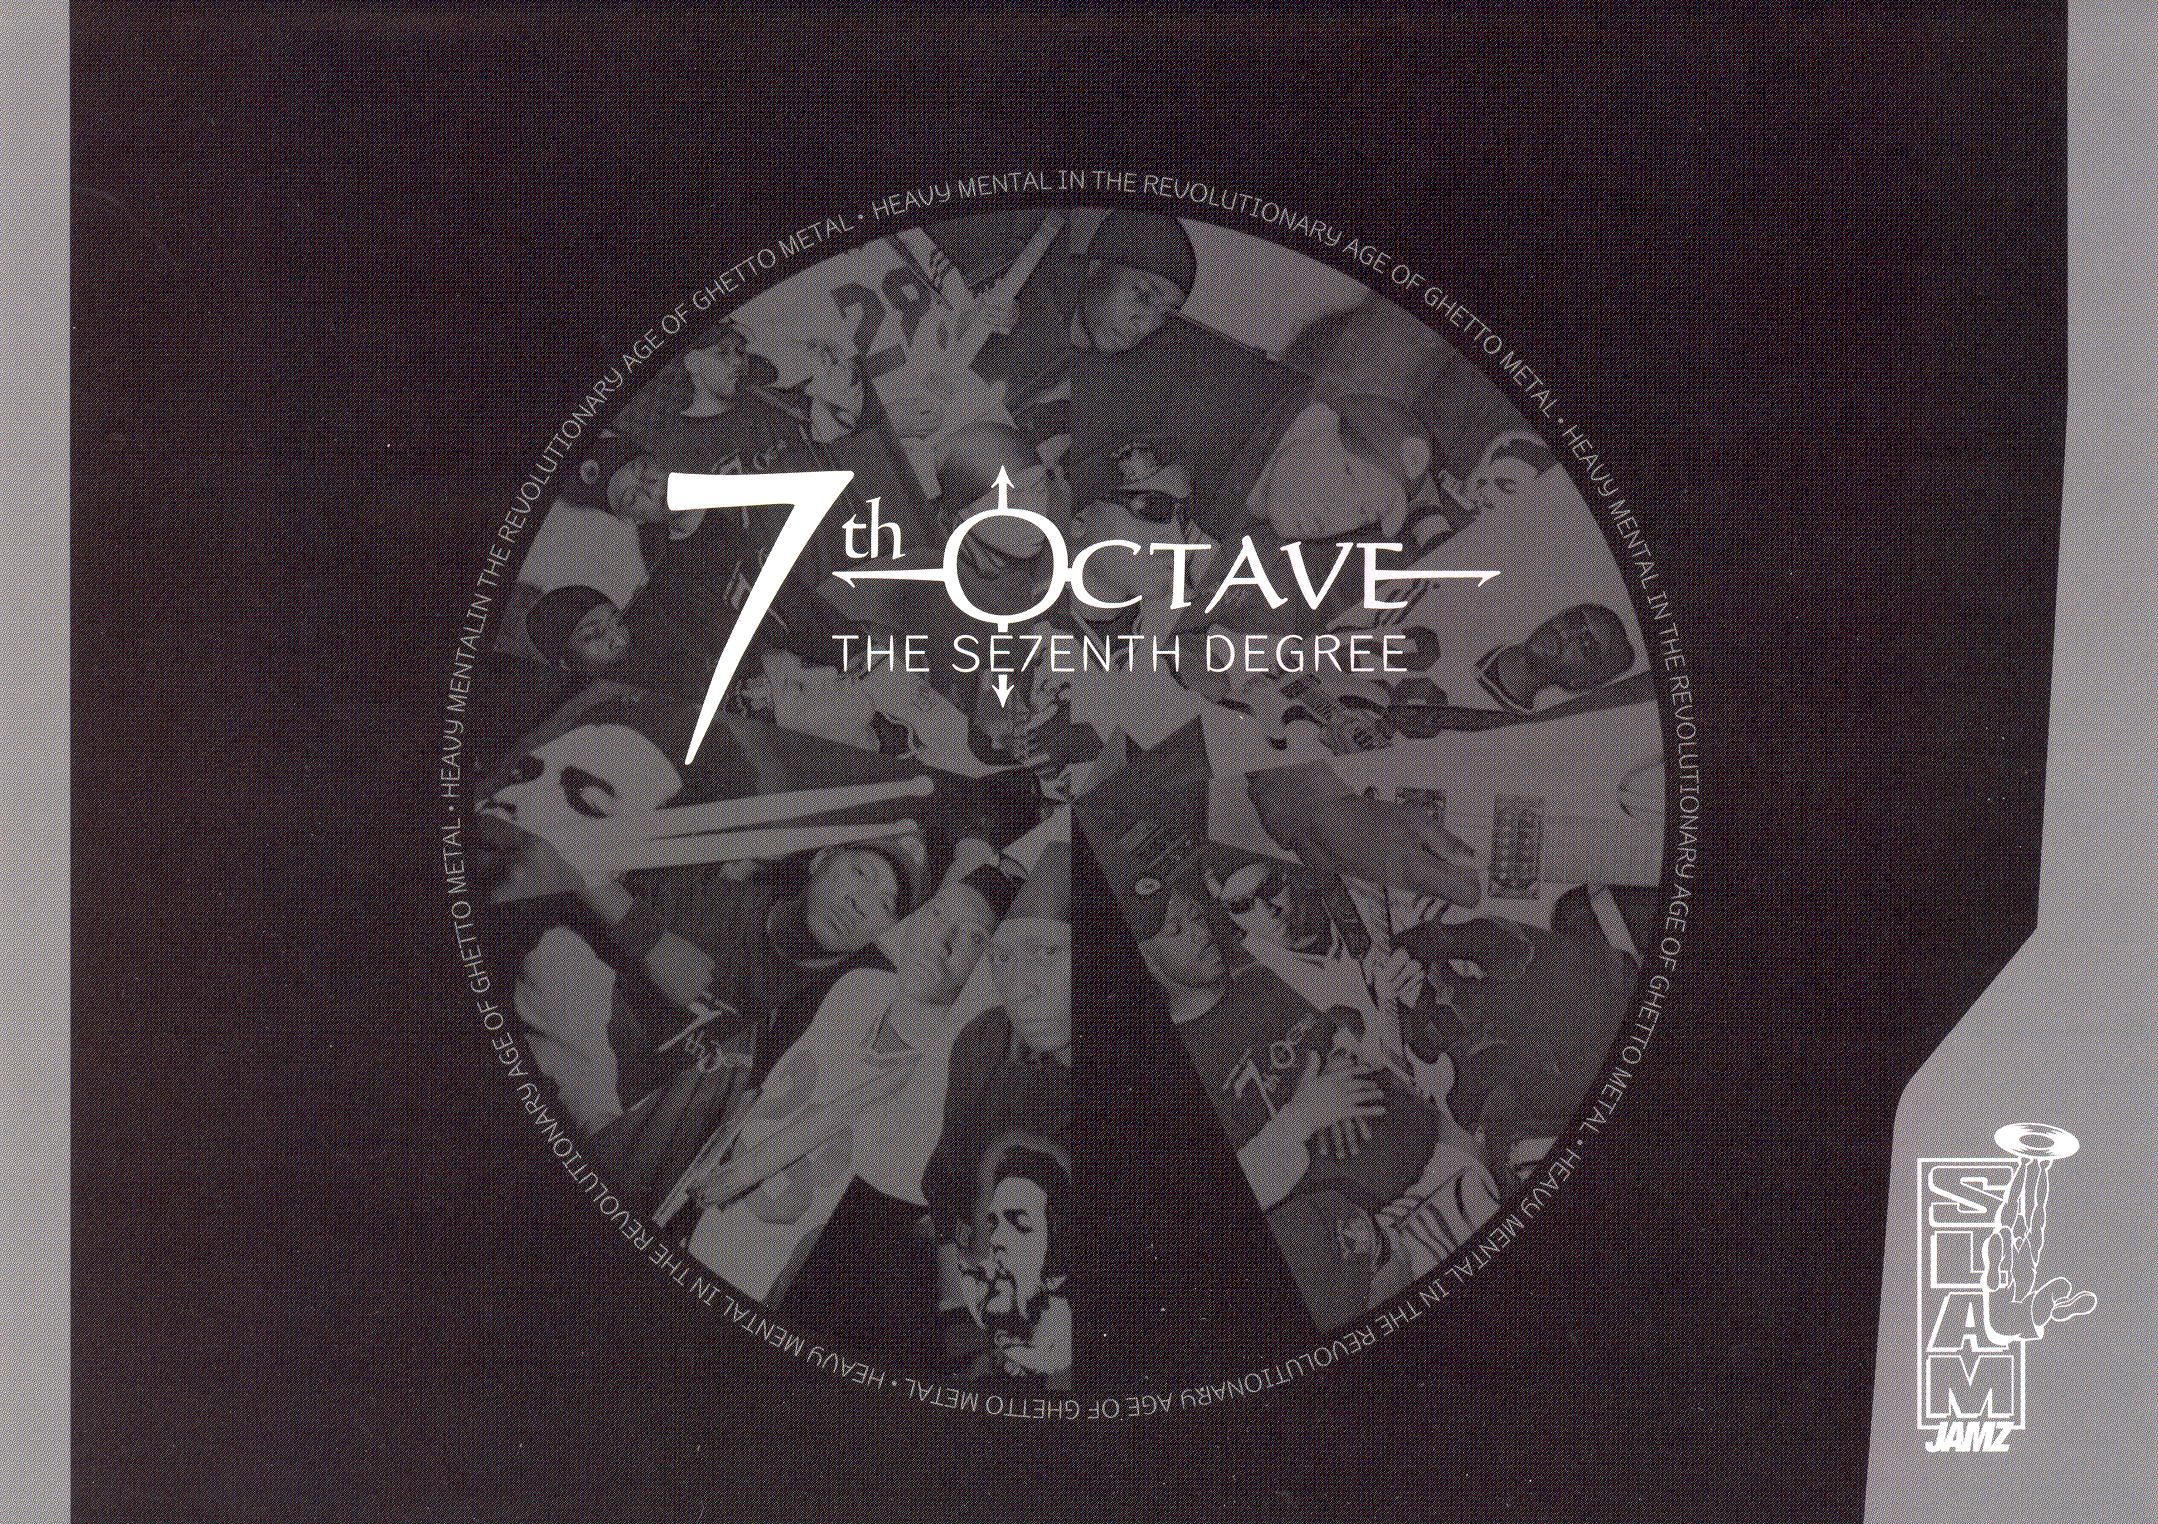 The 7th Octave: Se7enth Degree